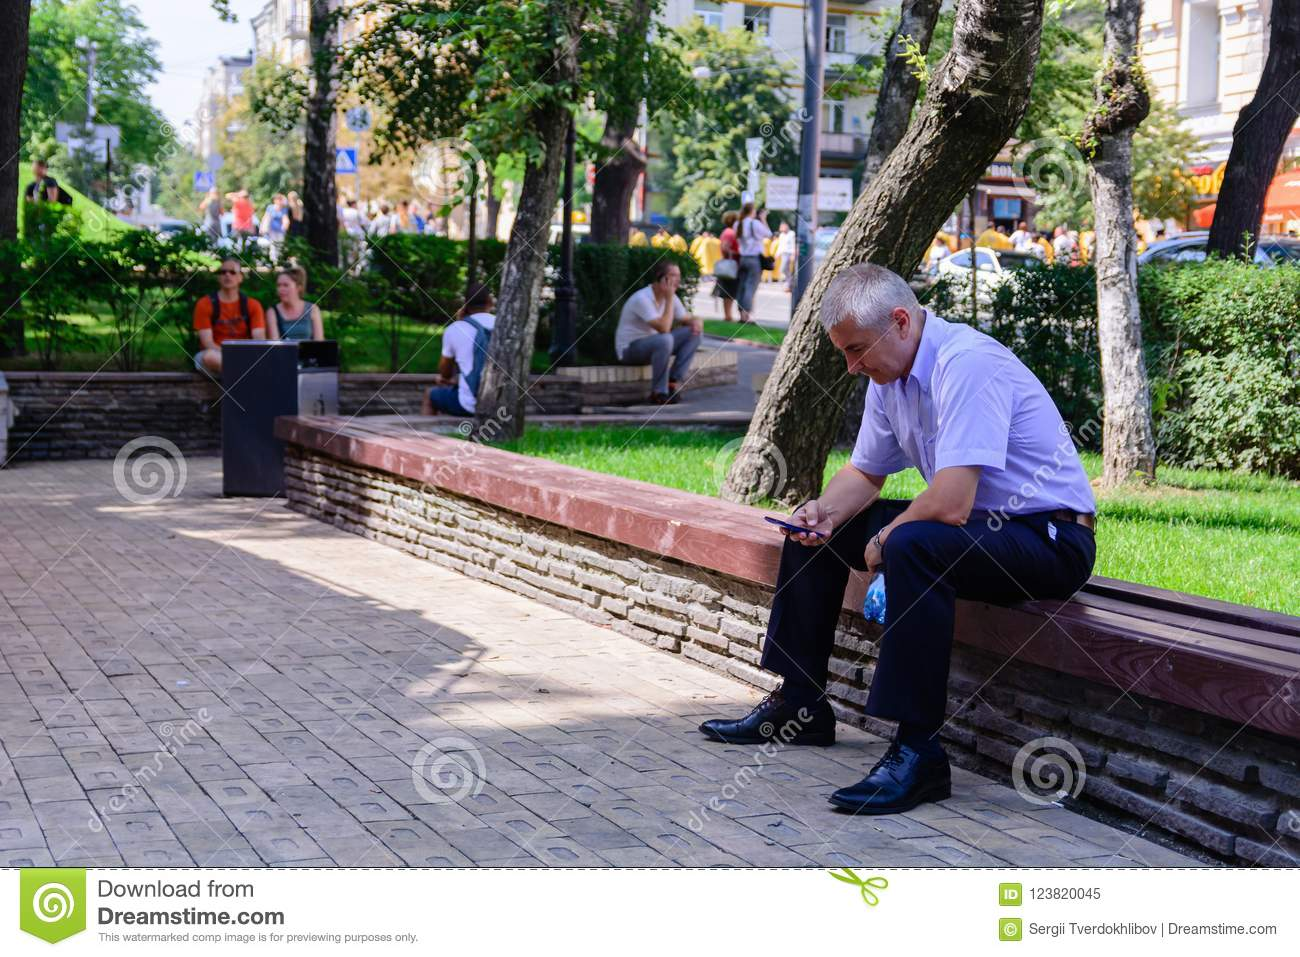 KIEV, UKRAINE - 20 JUNE 2018: man texting with his mobile phone, he is sitting on a wooden bench